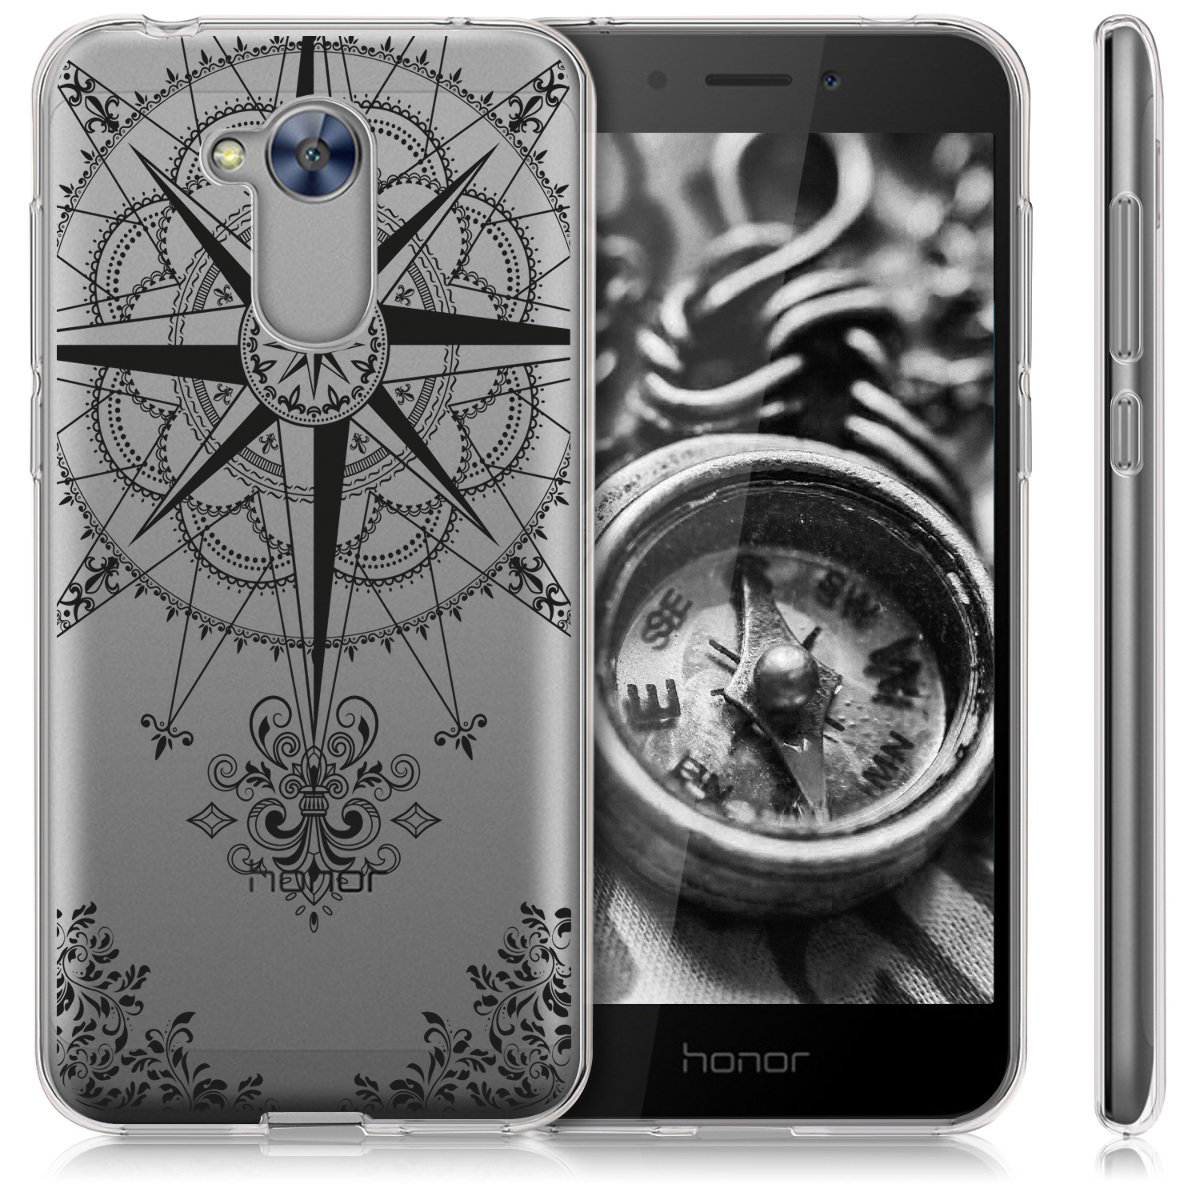 kwmobile-TPU-SILICONE-CRYSTAL-CASE-FOR-HUAWEI-HONOR-6A-6A-PRO-EU-amp-CHINA-SOFT